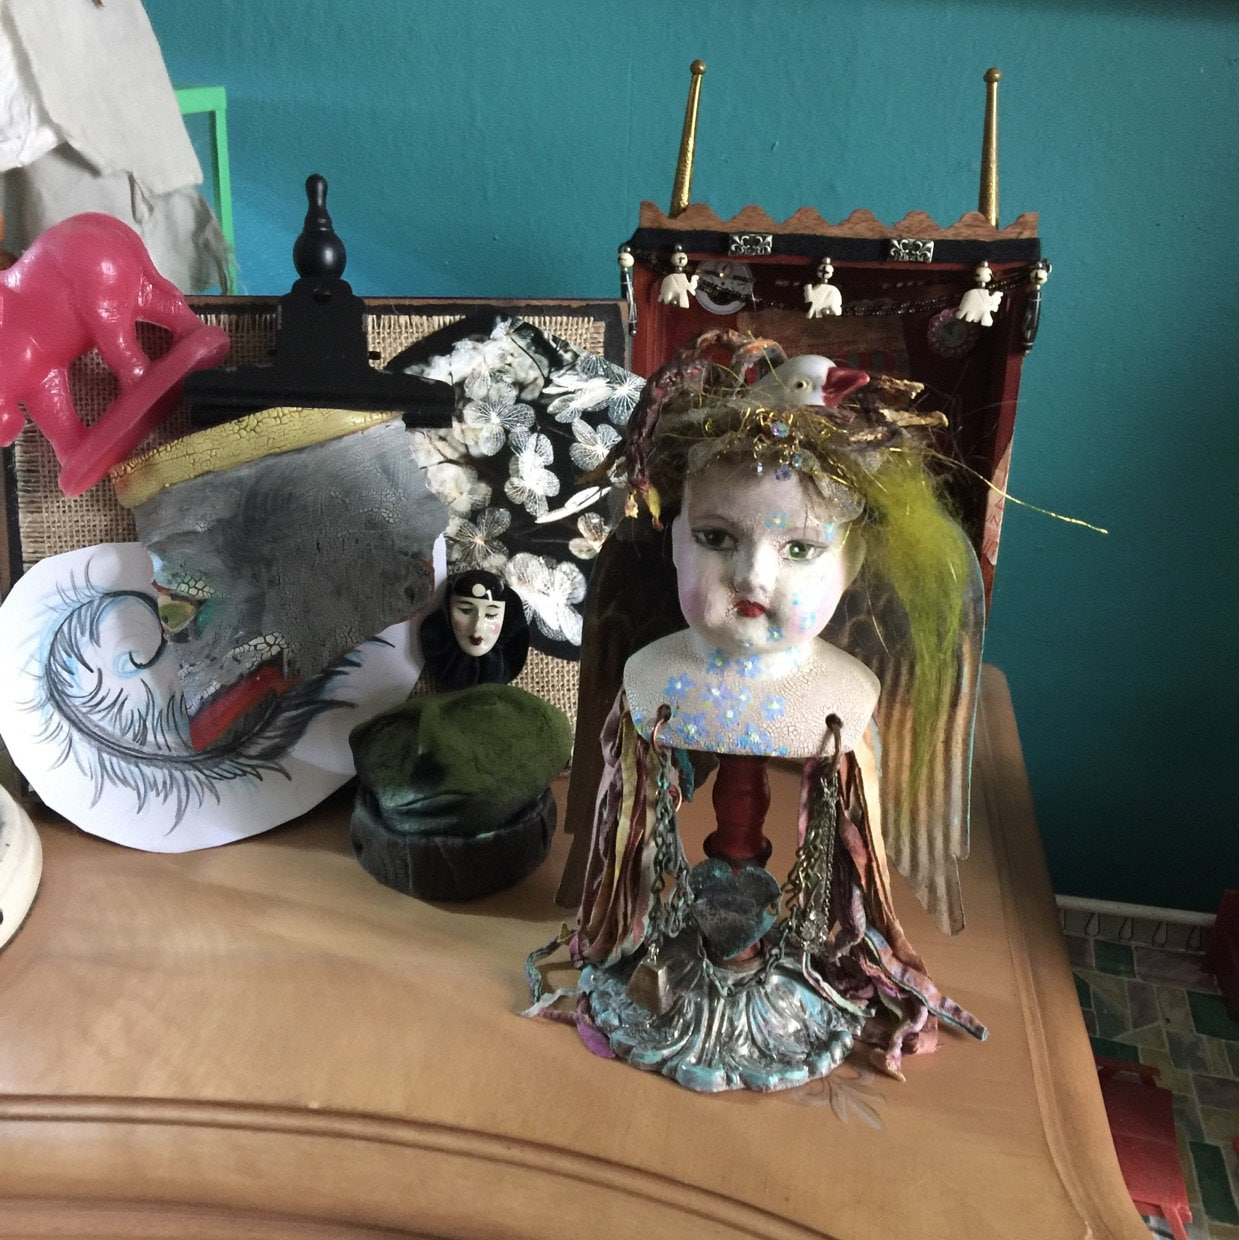 Kathy Sarvis added a photo of their purchase